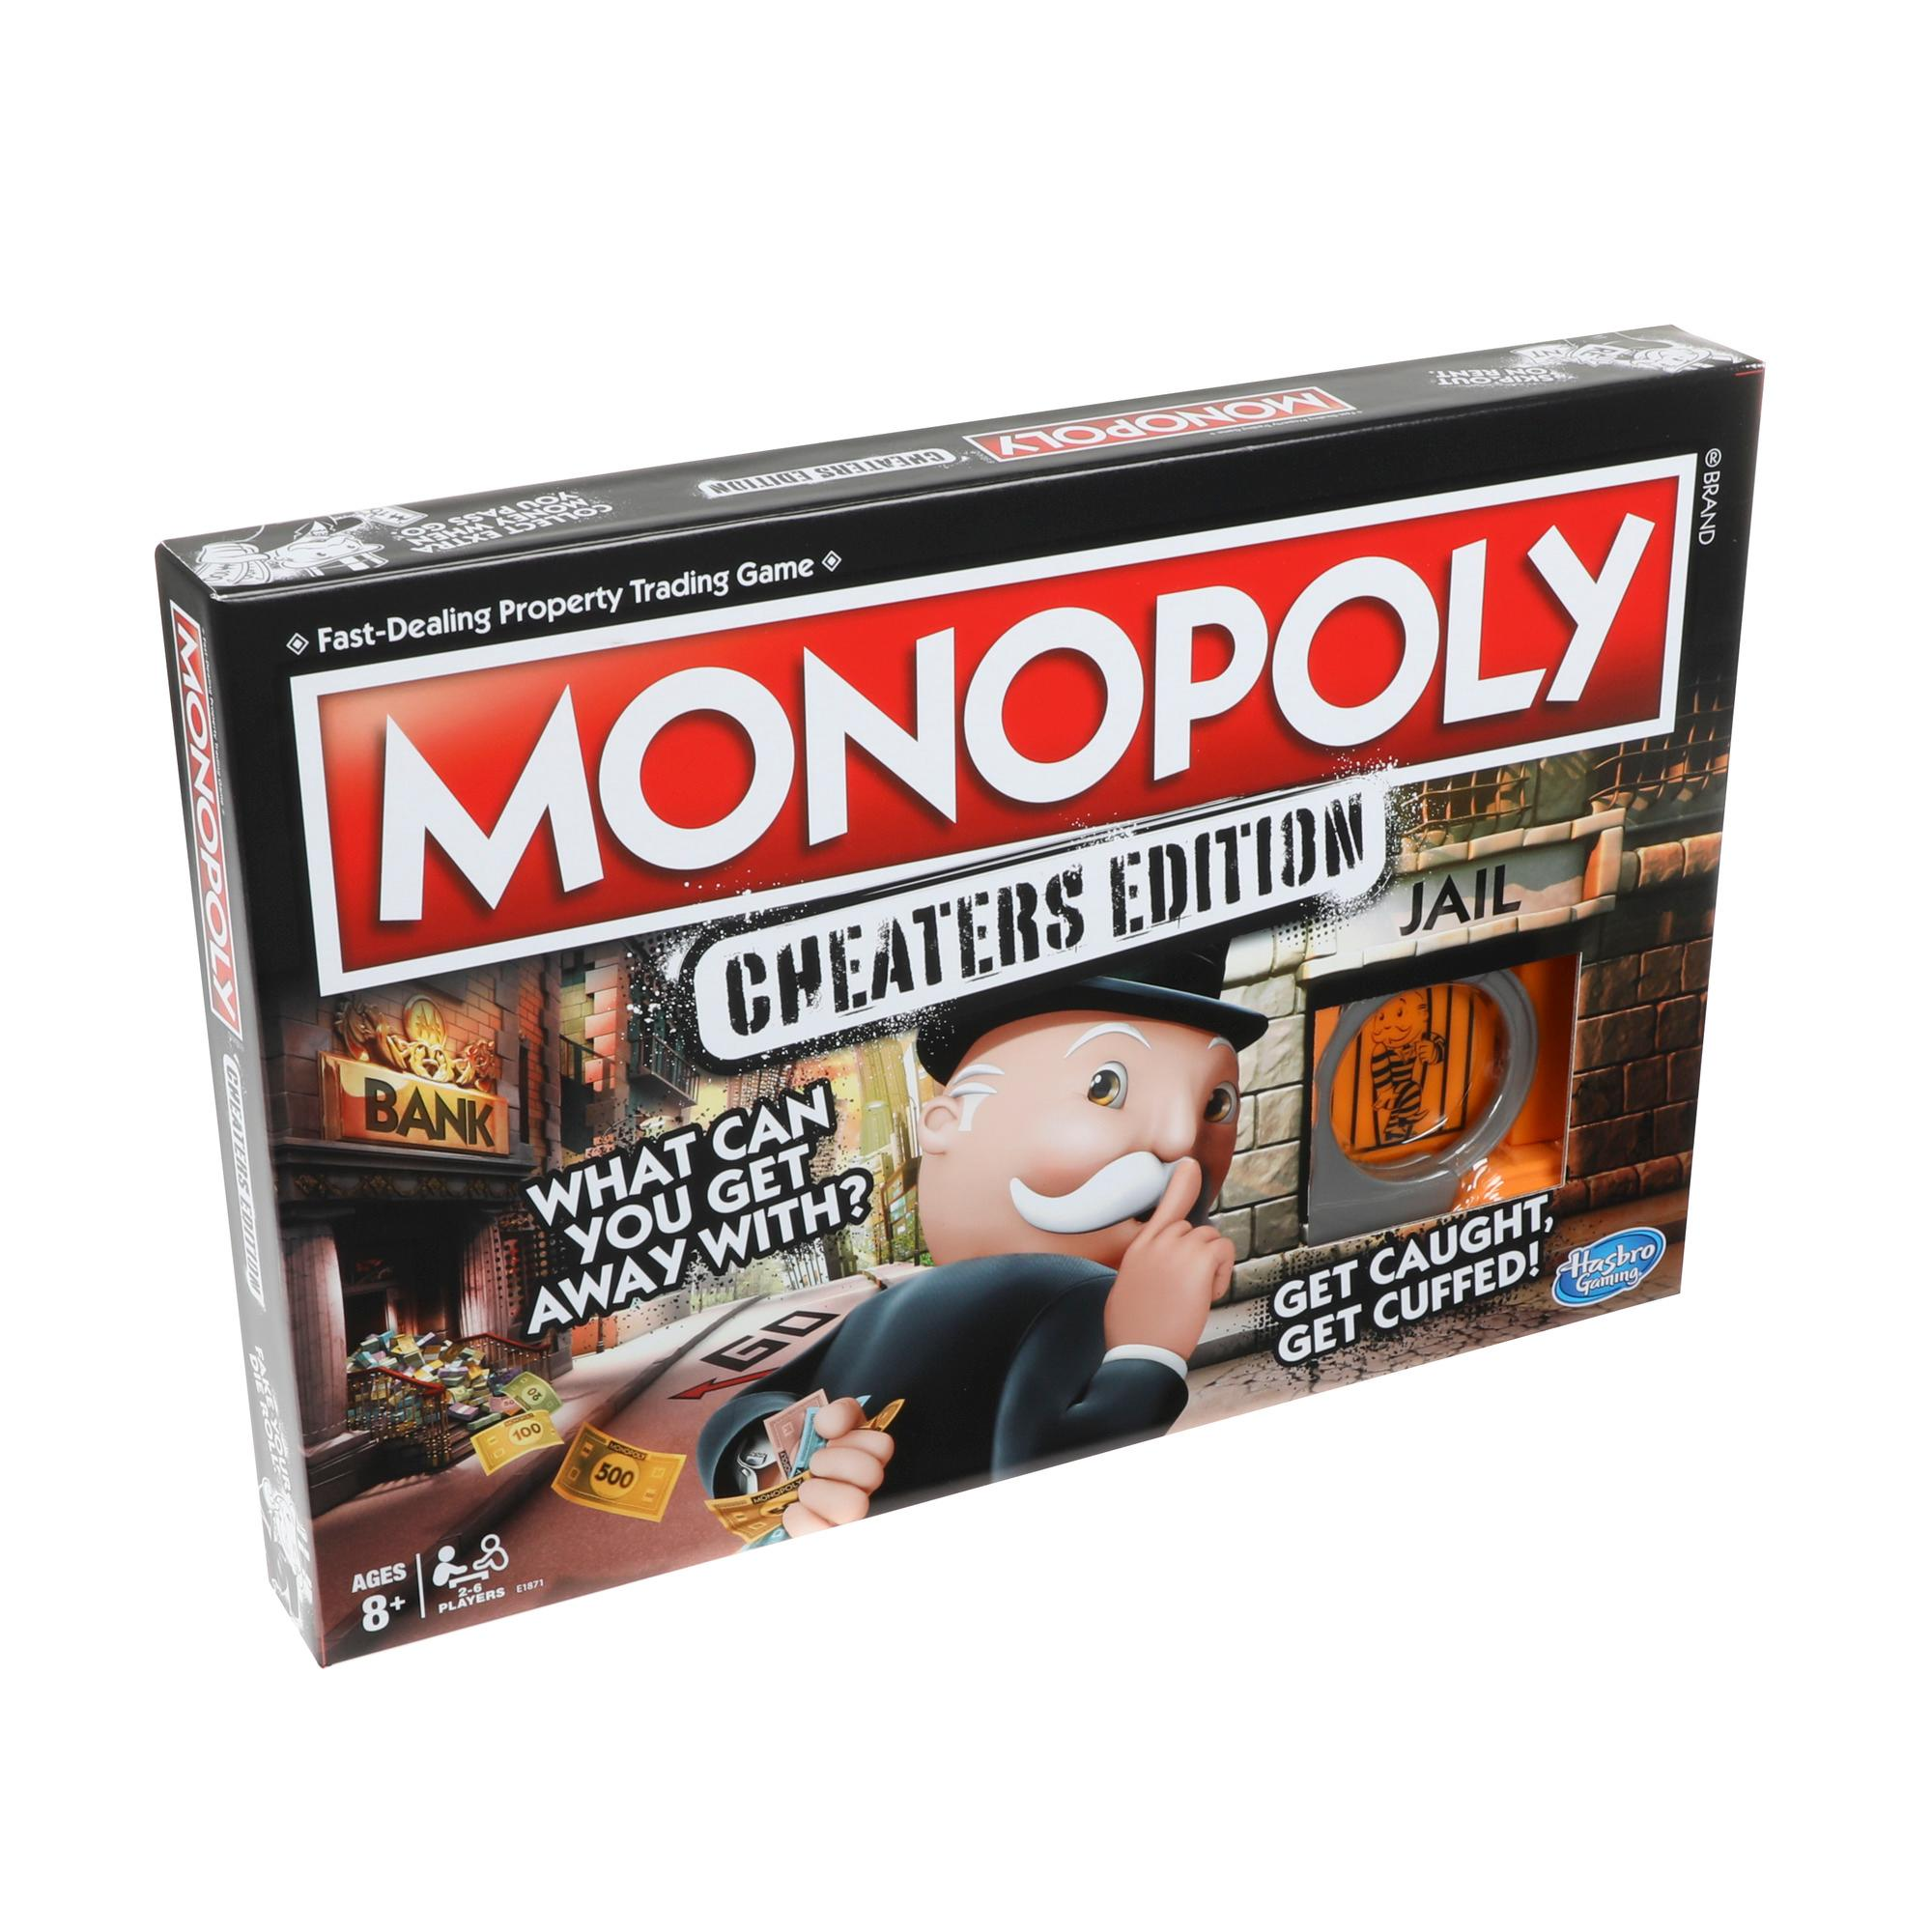 Juego Monopoly: Cheaters Edition